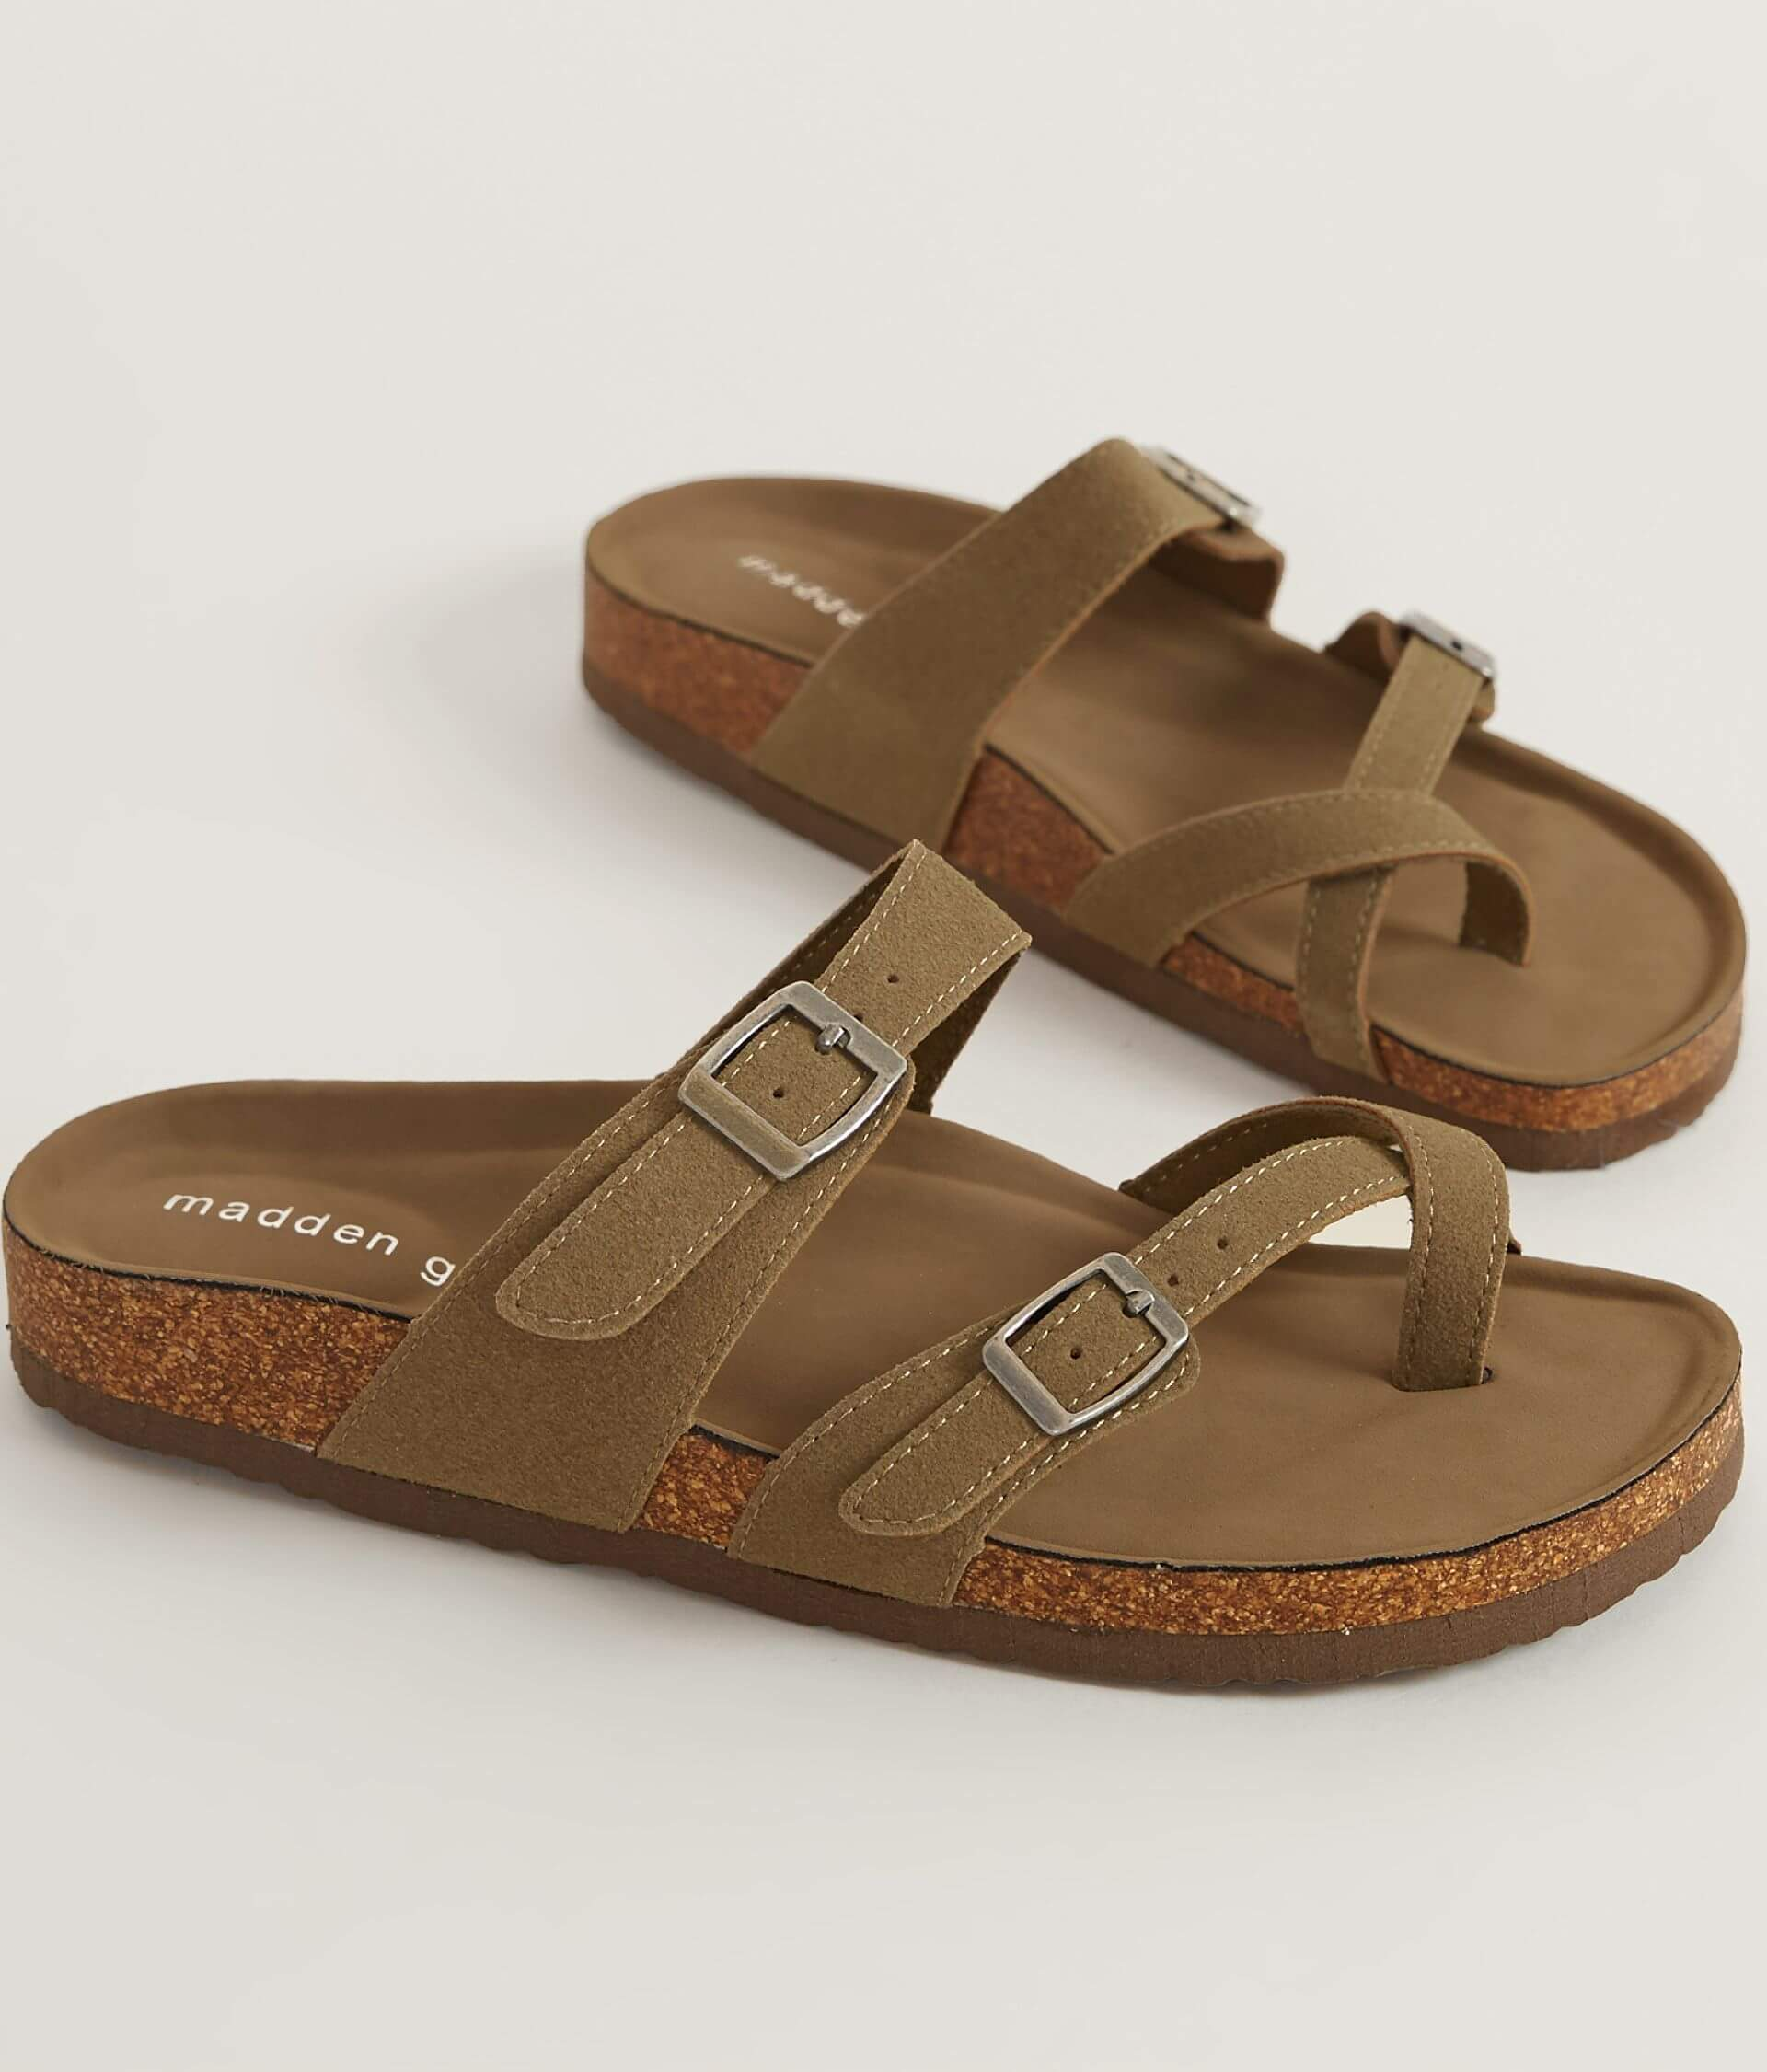 2ac5c0fcd49 Madden Girl Brycee Sandal - Women s Shoes in Taupe